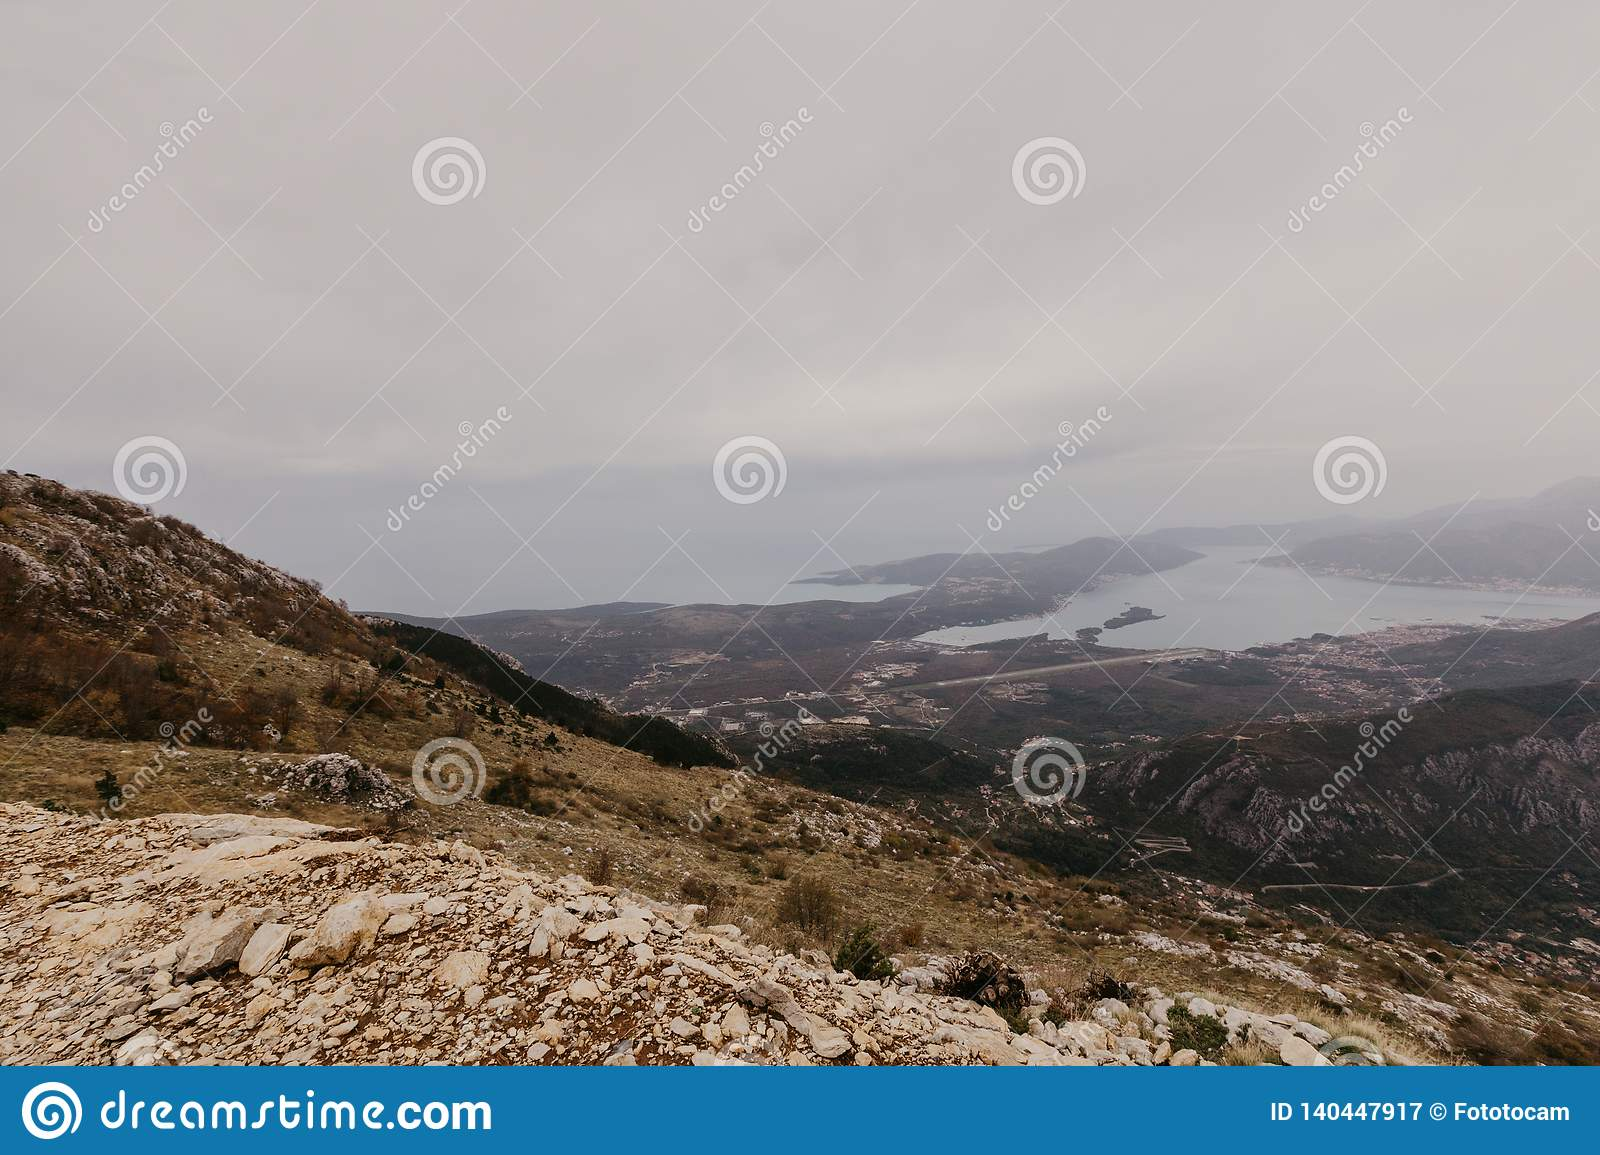 Bay of Kotor from the heights. View from Mount Lovcen to the bay. View down from the observation platform on the mountain Lovcen